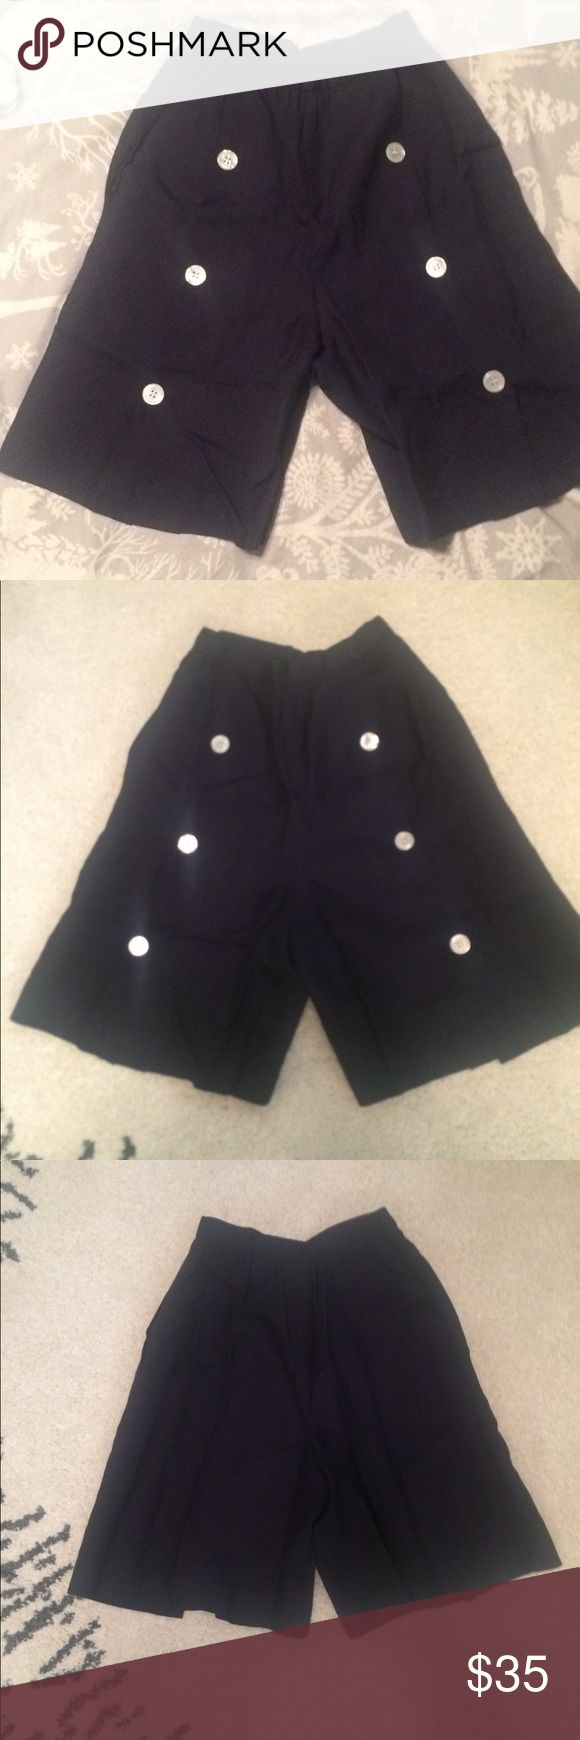 """⛵️ Vintage 80's  High Waisted Linen Shorts⛵️ Rare Early 80s Sailor Style Culottes/Walking Short.  Navy blue linen.  Original 1"""" Faux Mother of pearl buttons down front of each leg. Fully lined.  Side seam pockets.  1"""" banded, gathered Waist with 2 slide hook fasteners.  Wide leg, looks like a skirt when worn. Waist measures 12"""" across.  Rise 13"""". Inseam 8""""  Great Condition, No Flaws. Vintage Shorts"""